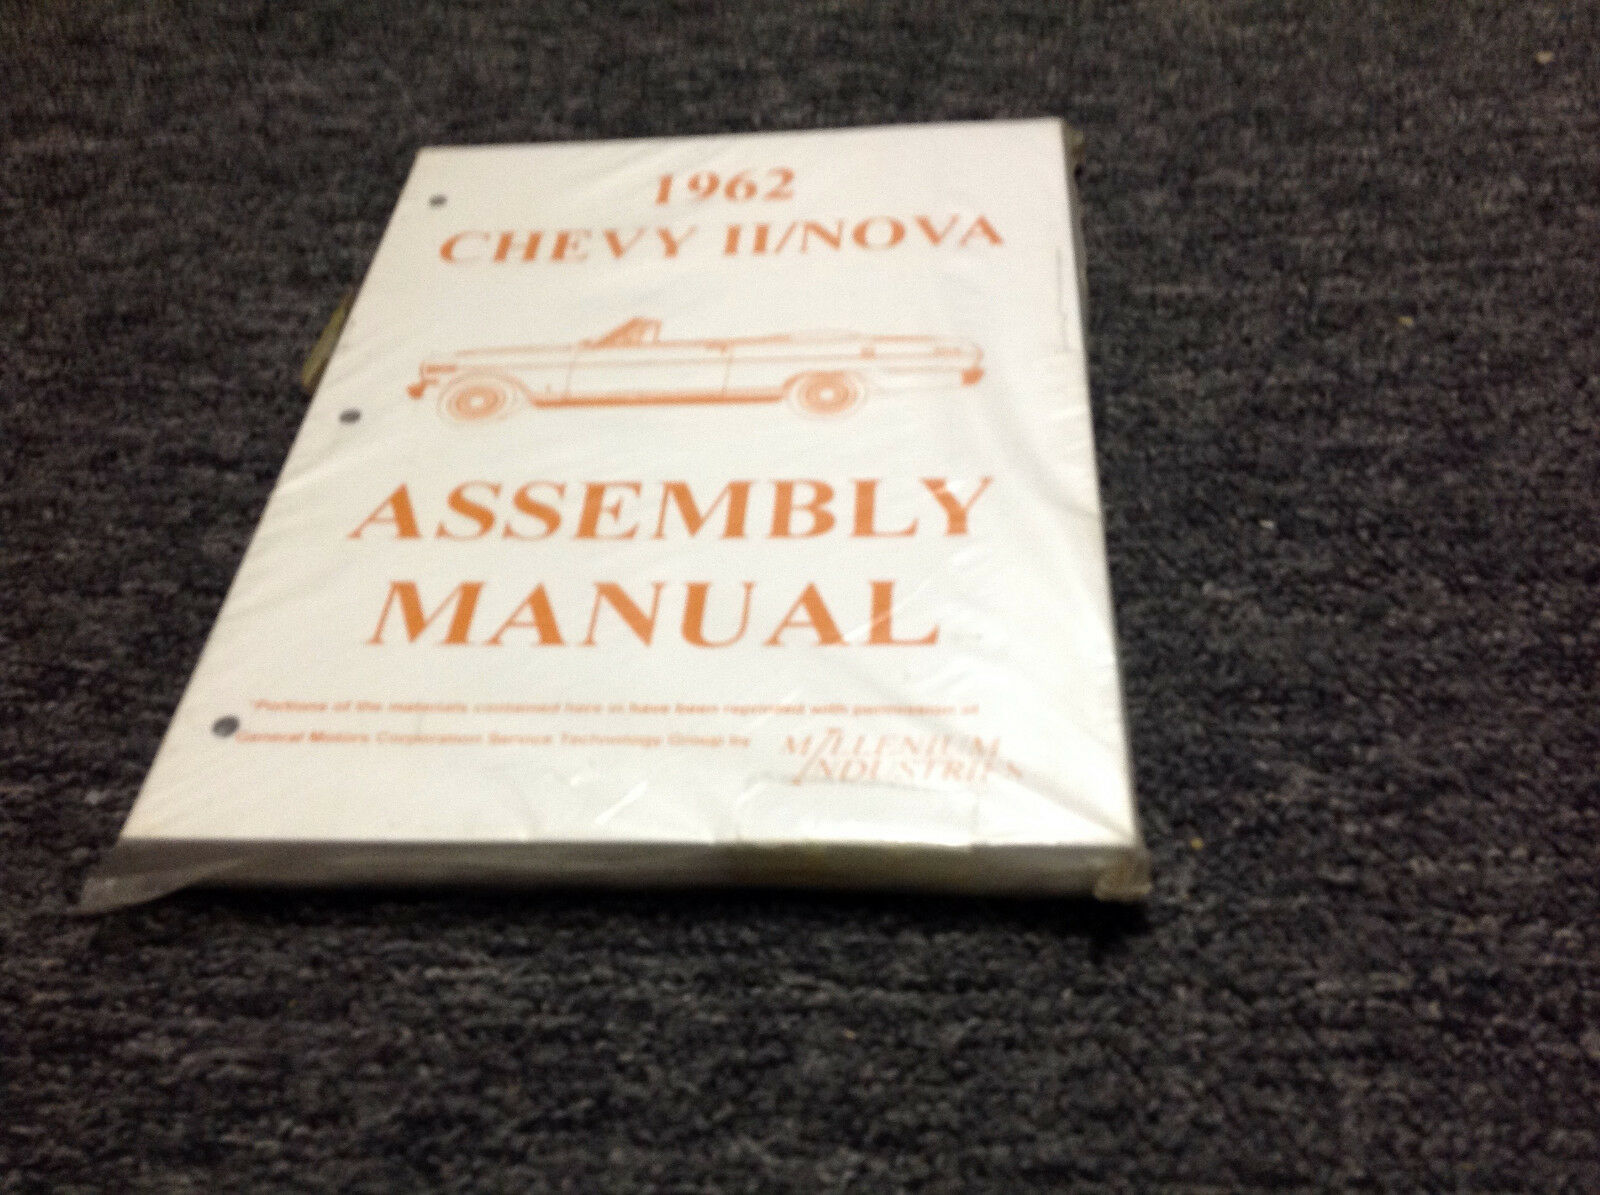 1962 Chevrolet Chevy II NOVA Assembly Manual Book